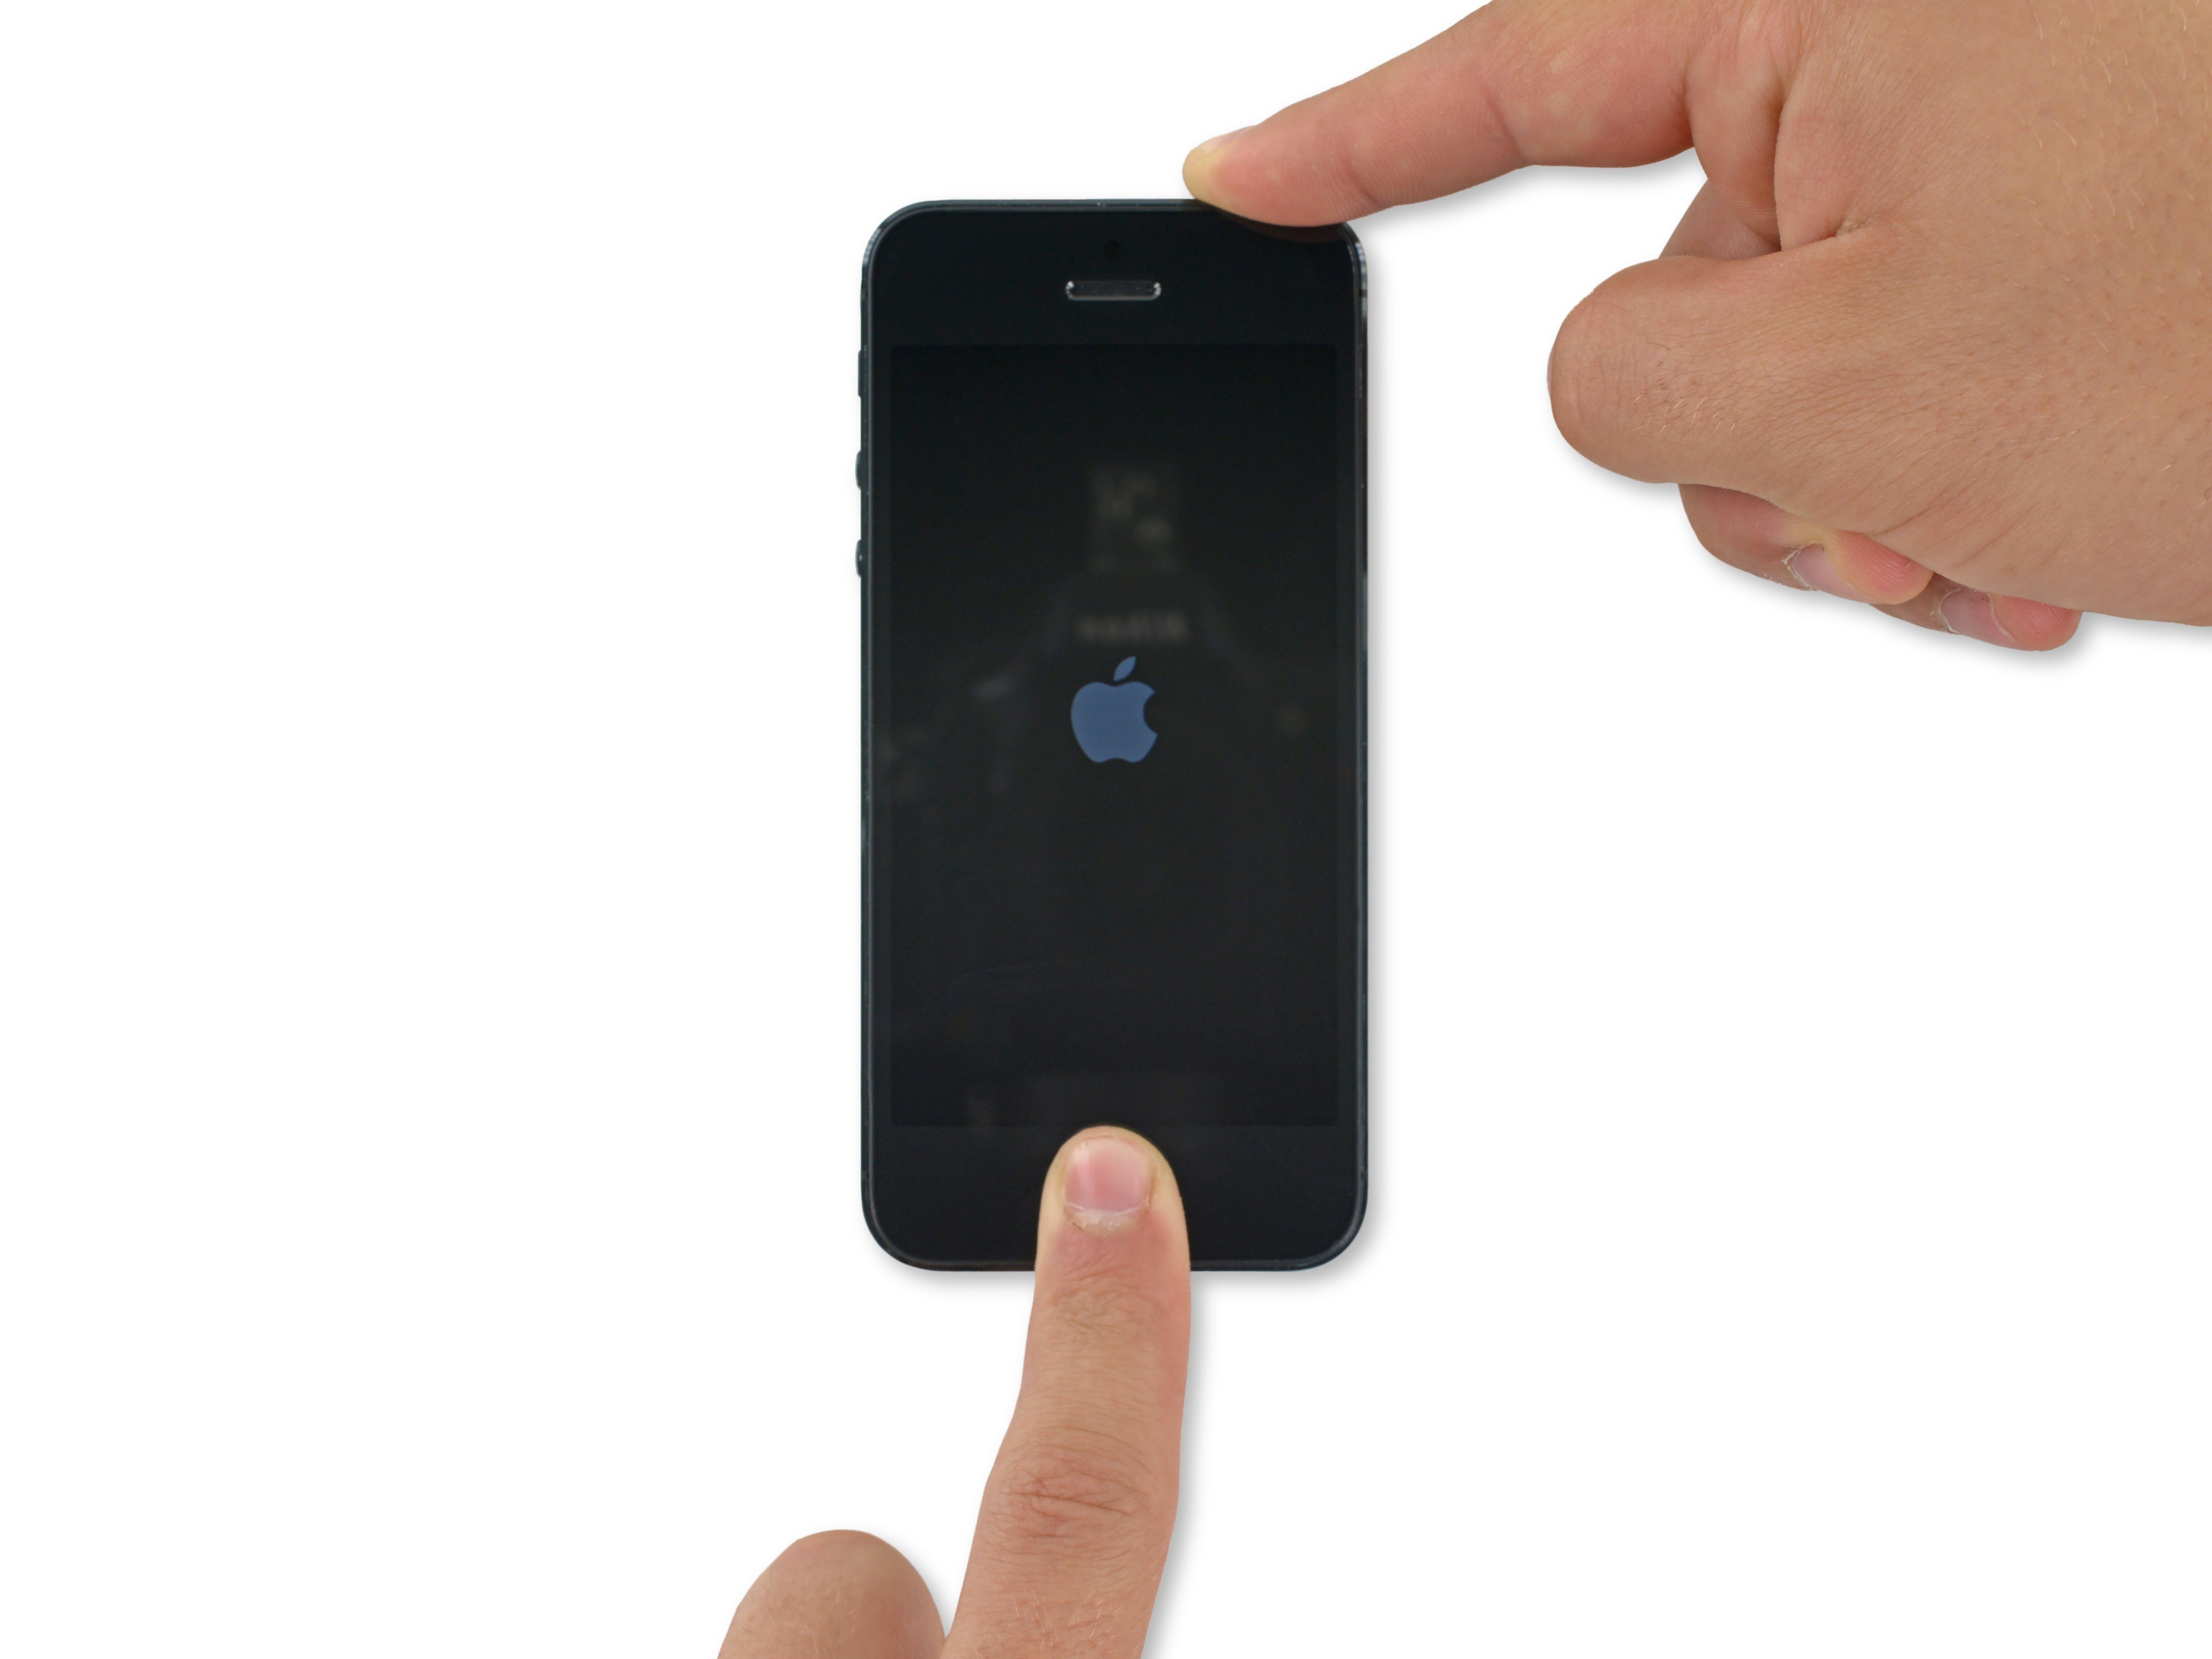 How to Force Restart an iPhone 5 - iFixit Repair Guide